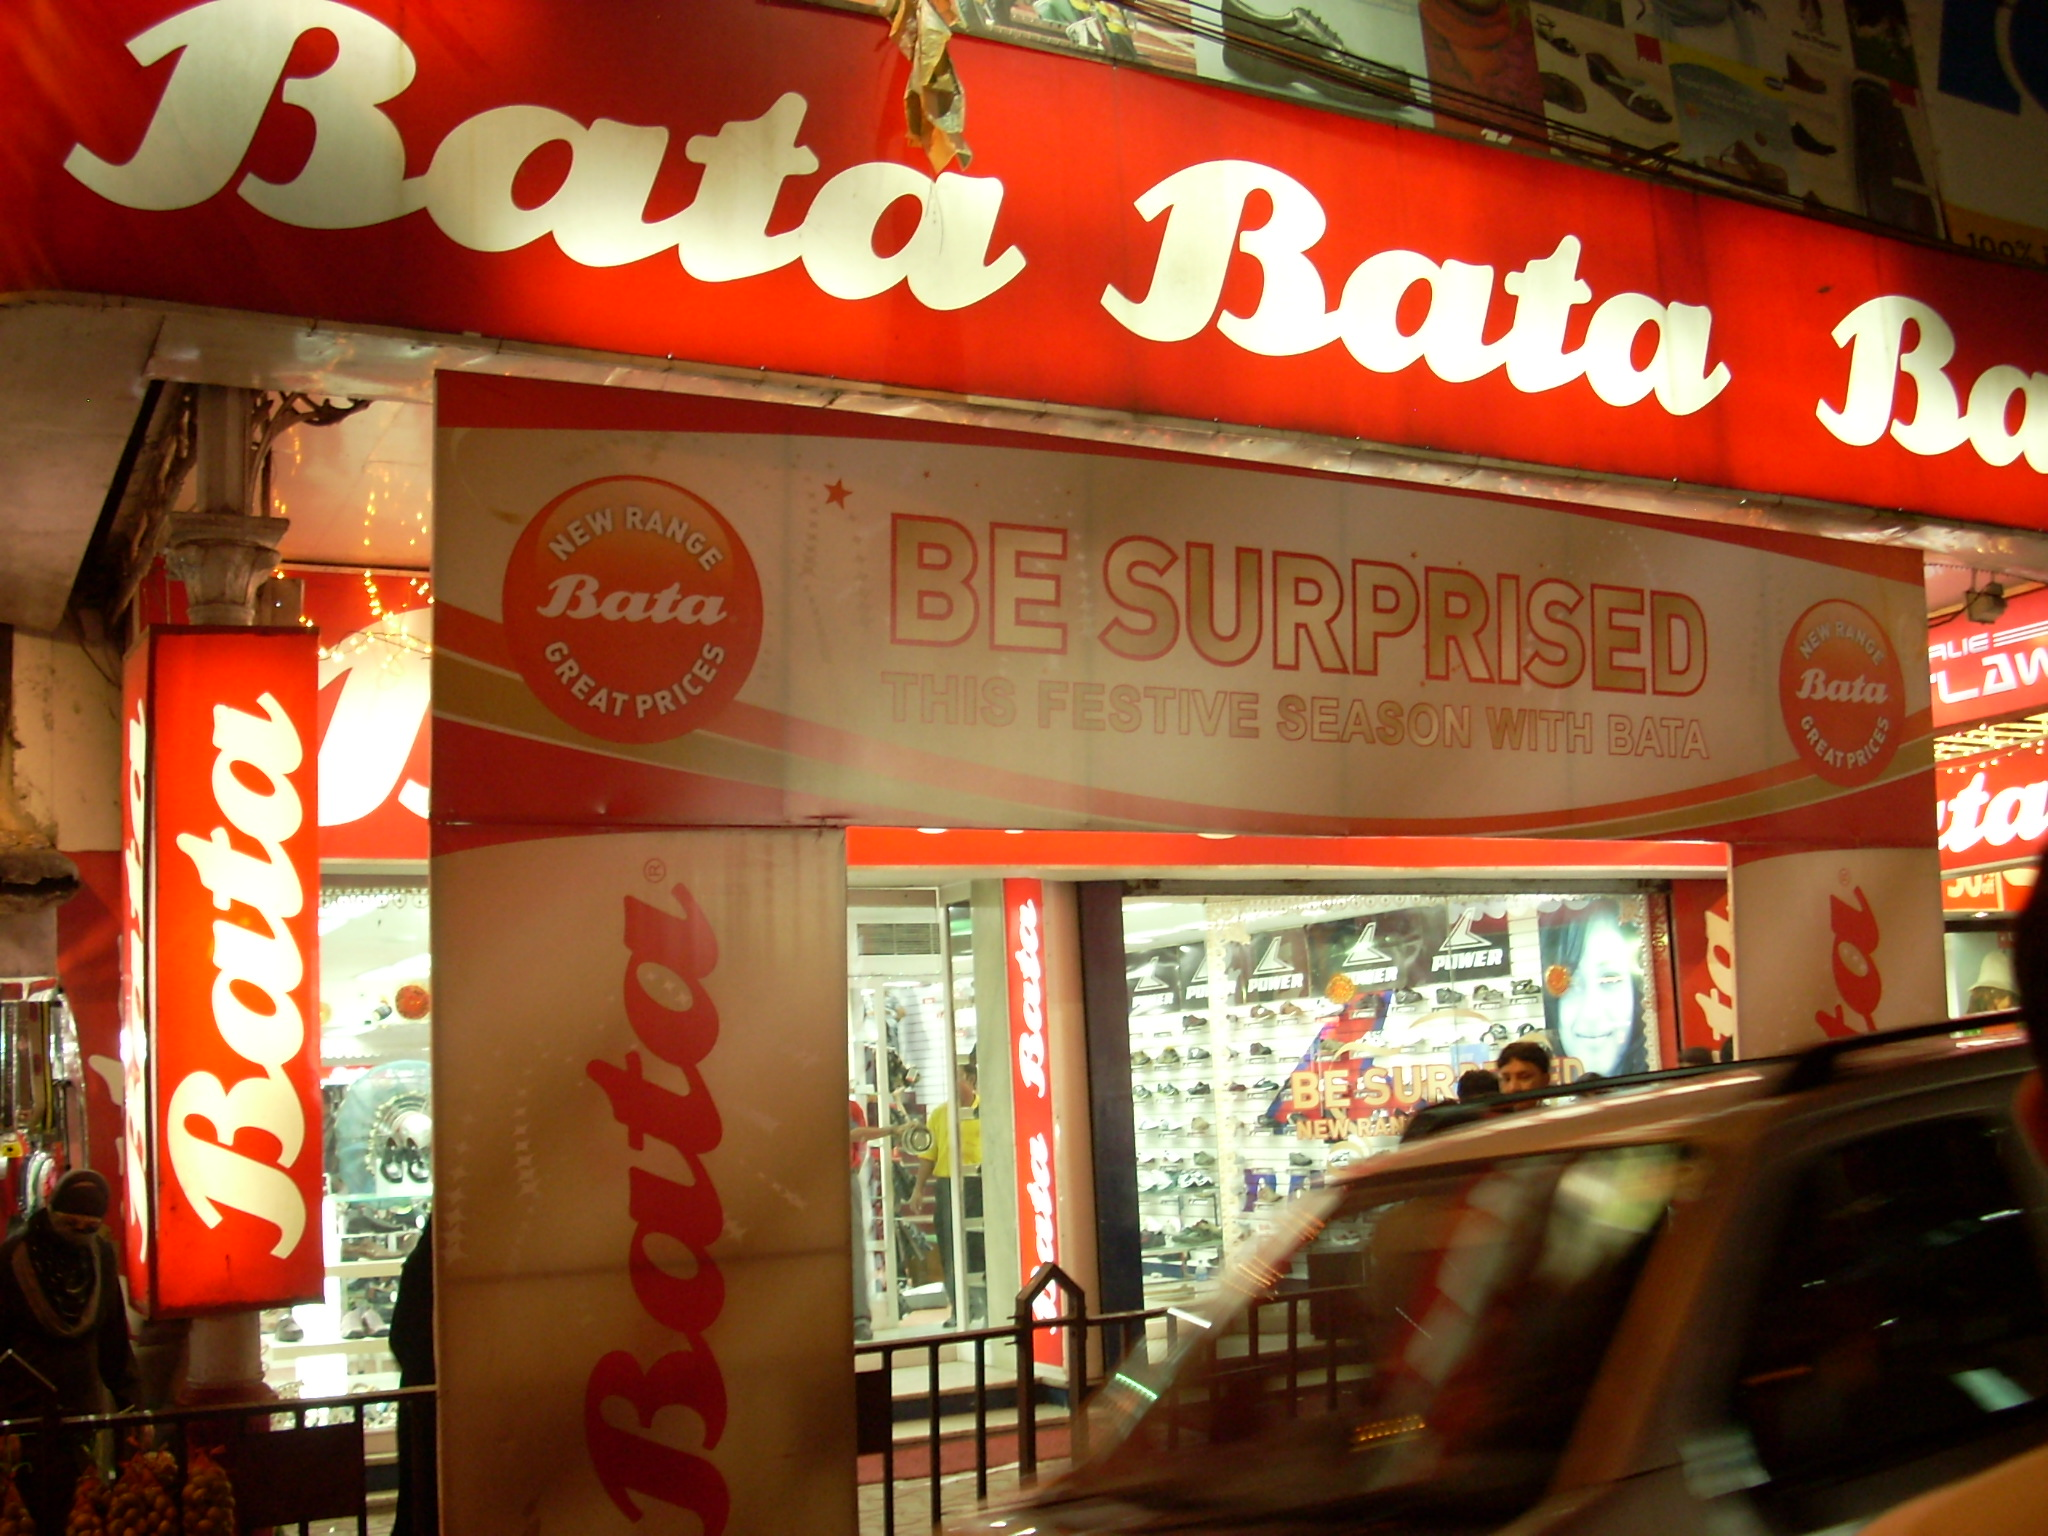 https://upload.wikimedia.org/wikipedia/en/5/5e/Bata_india_kolkata.jpg